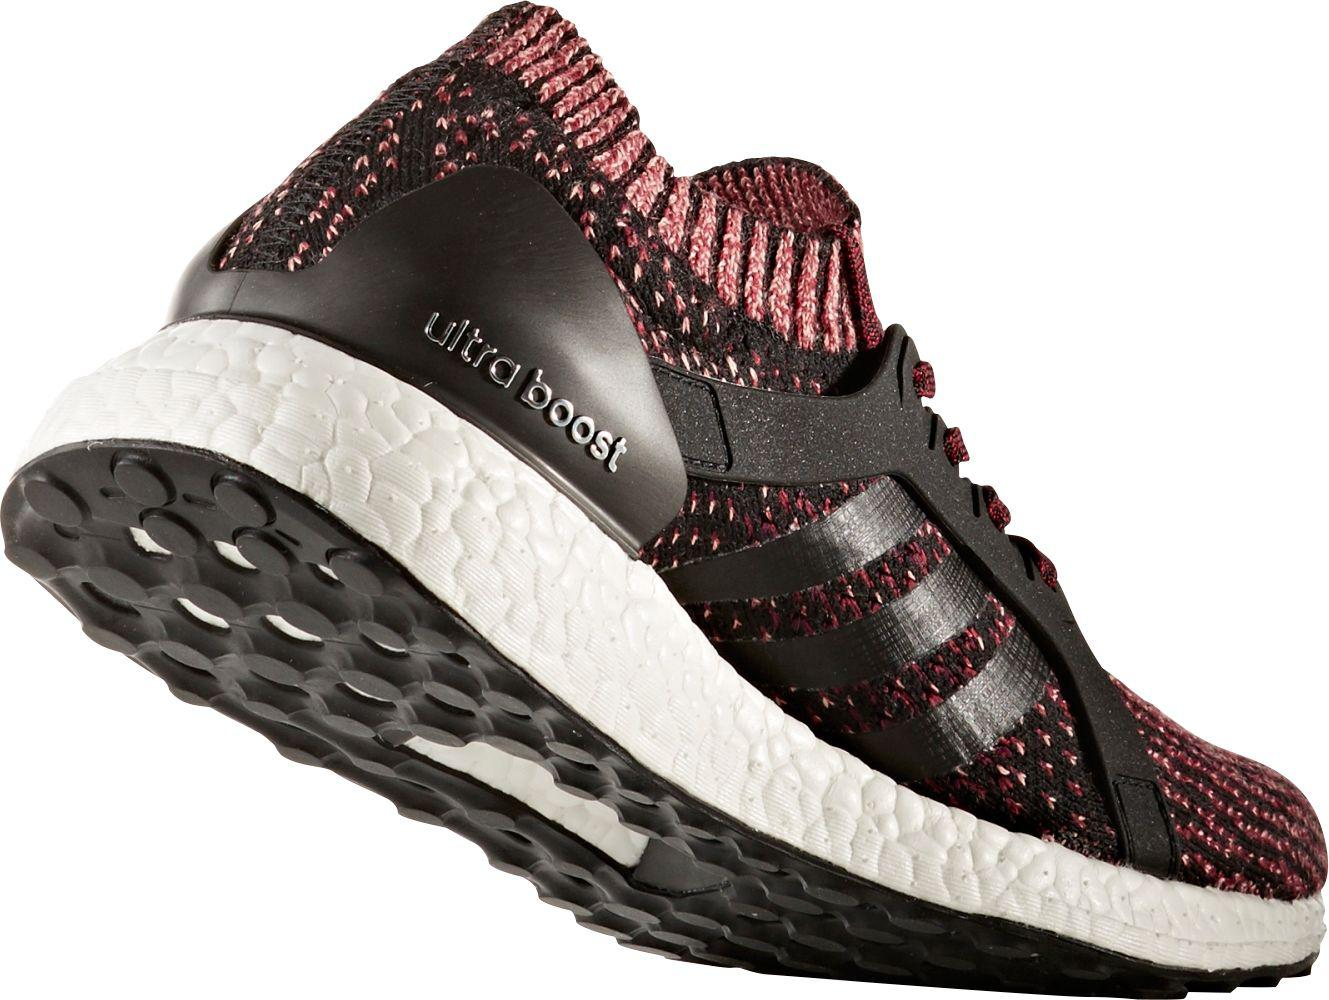 45513d1380771 Adidas - Multicolor Ultra Boost X Running Shoes for Men - Lyst